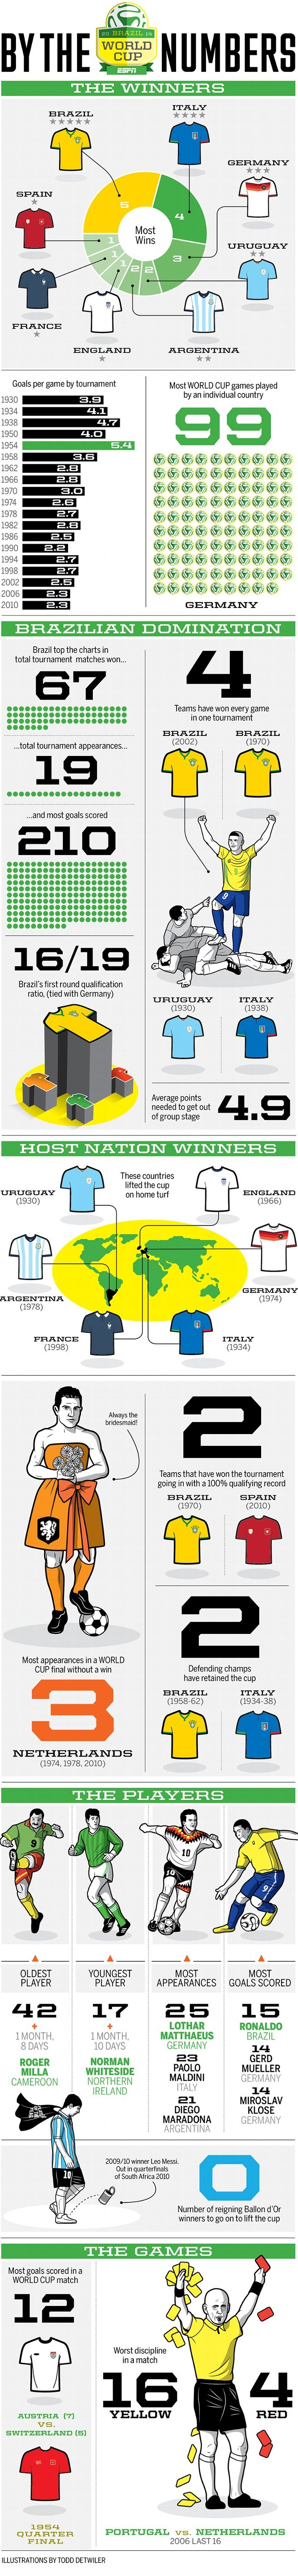 World Cup 2014 Brazil - Facts and Figures - Infographics